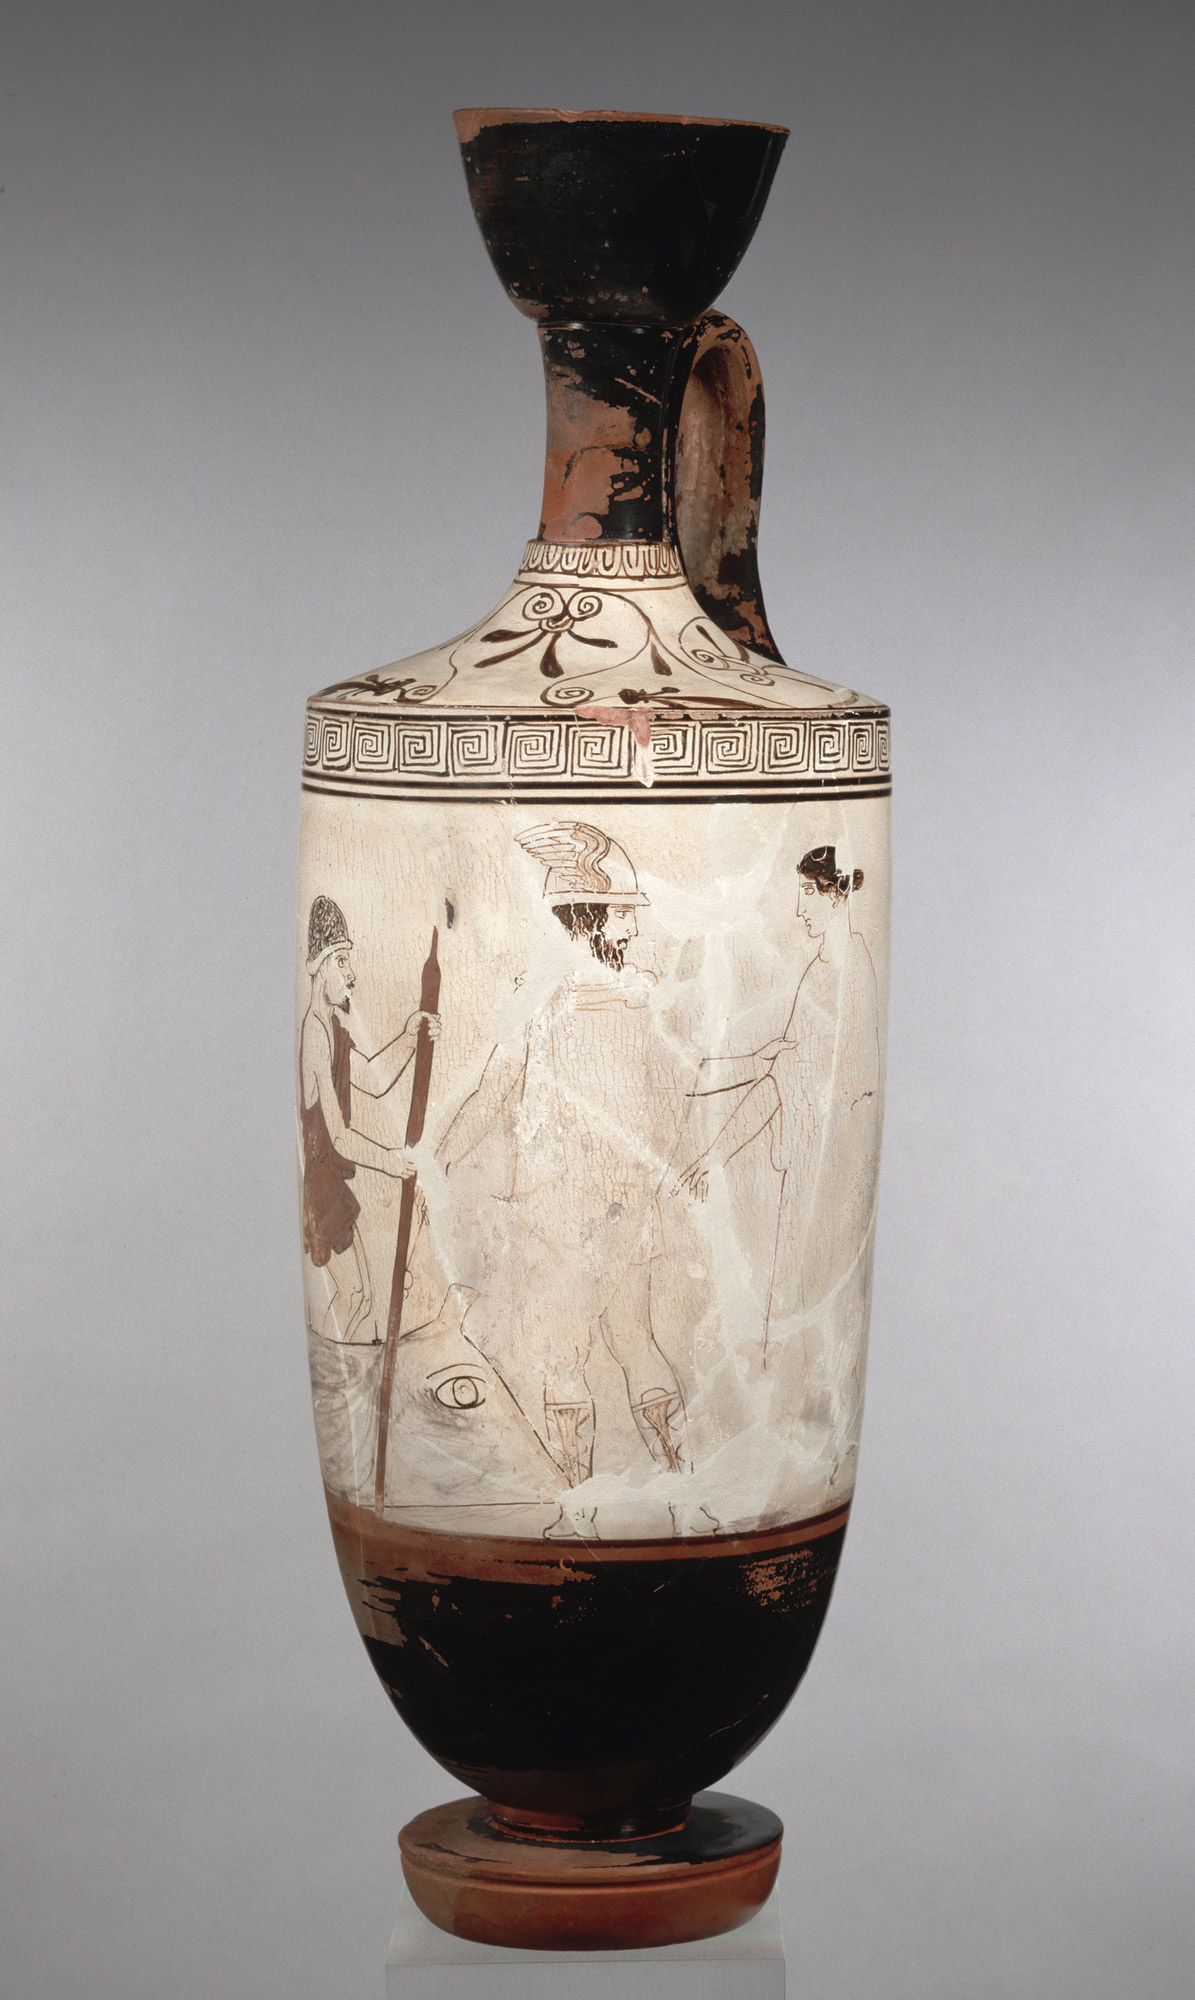 Tall vase with white body, painting with three figures--a soldier on the left, Hermes in the middle, and a woman on the right.